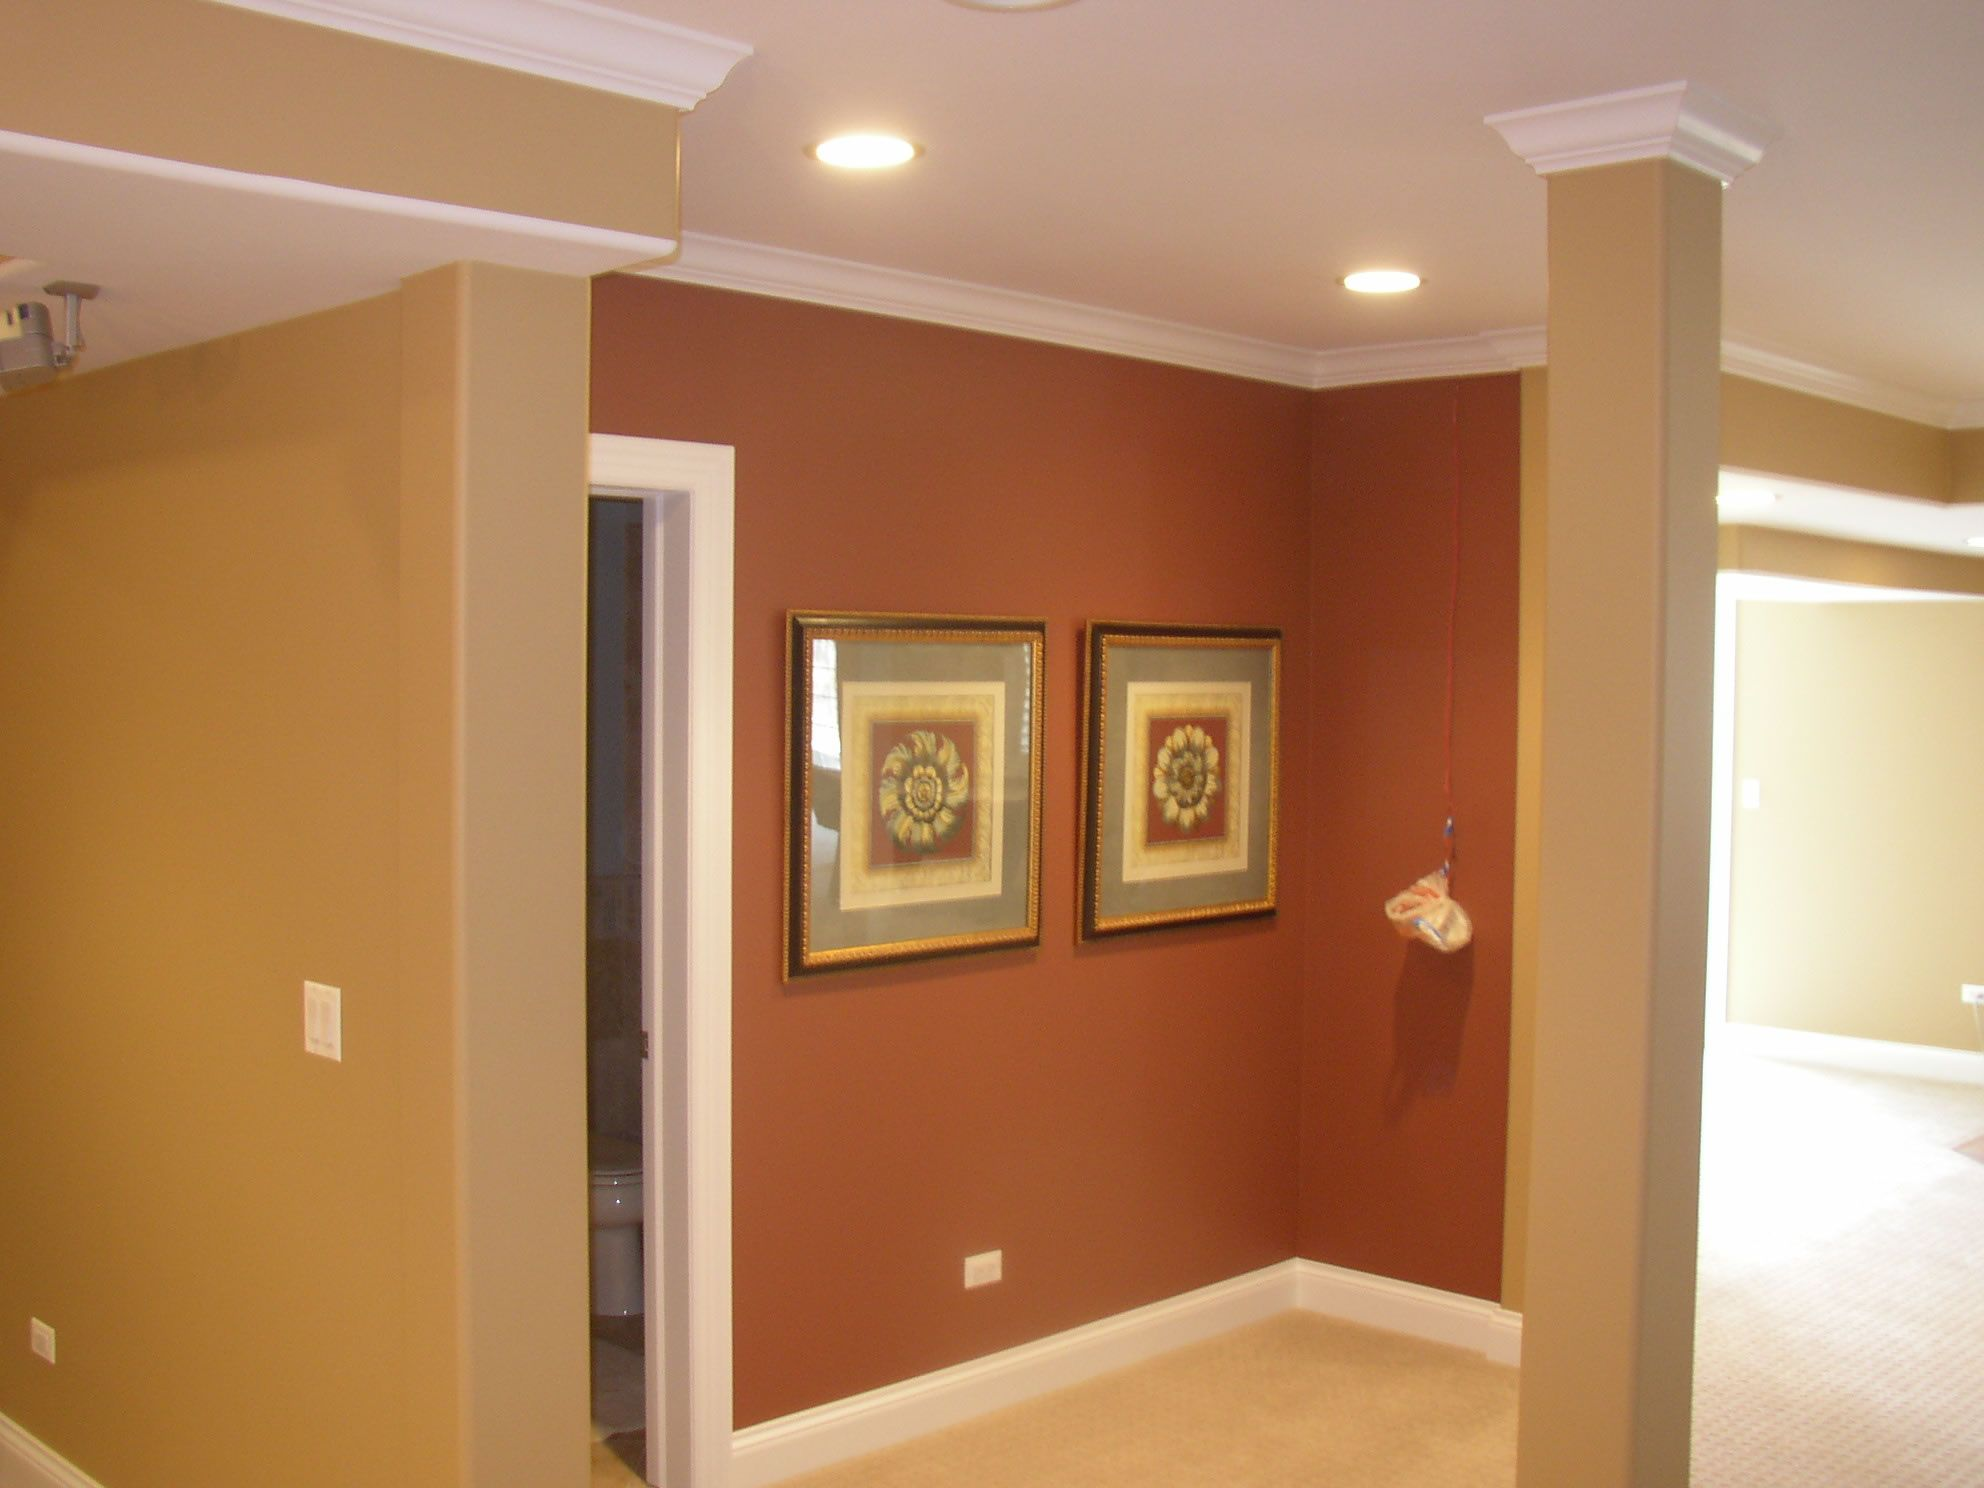 Cost To Paint A House Interior Best Of Extraordinary Interior Painting Cost  2730 Ideas Affordable Cost To Paint A House Interior Part 51